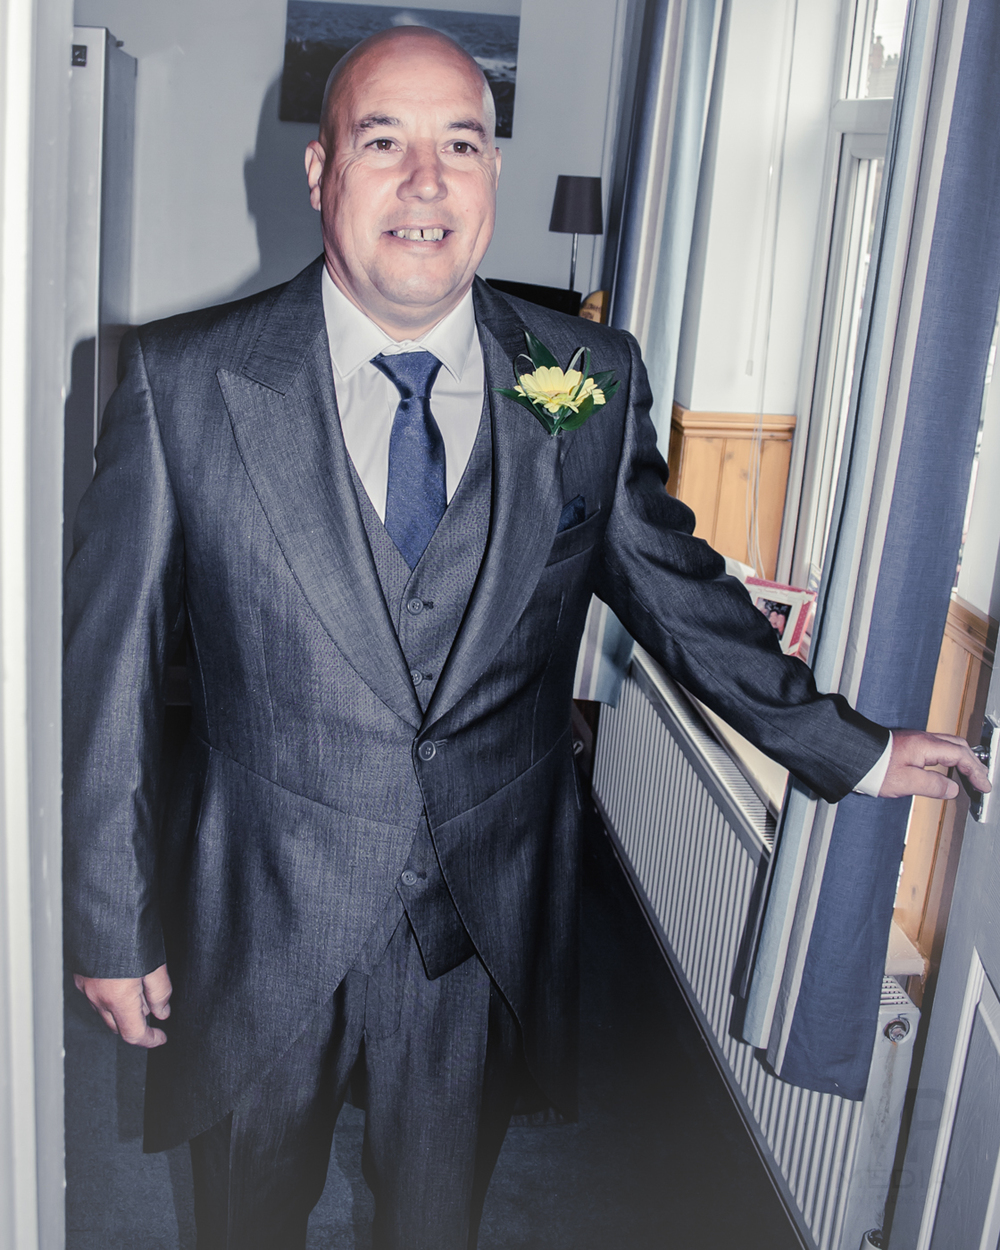 130 - Chris and Natalies Wedding (MAIN) - DO NOT SHARE THIS IMAGES ONLINE -4387.JPG